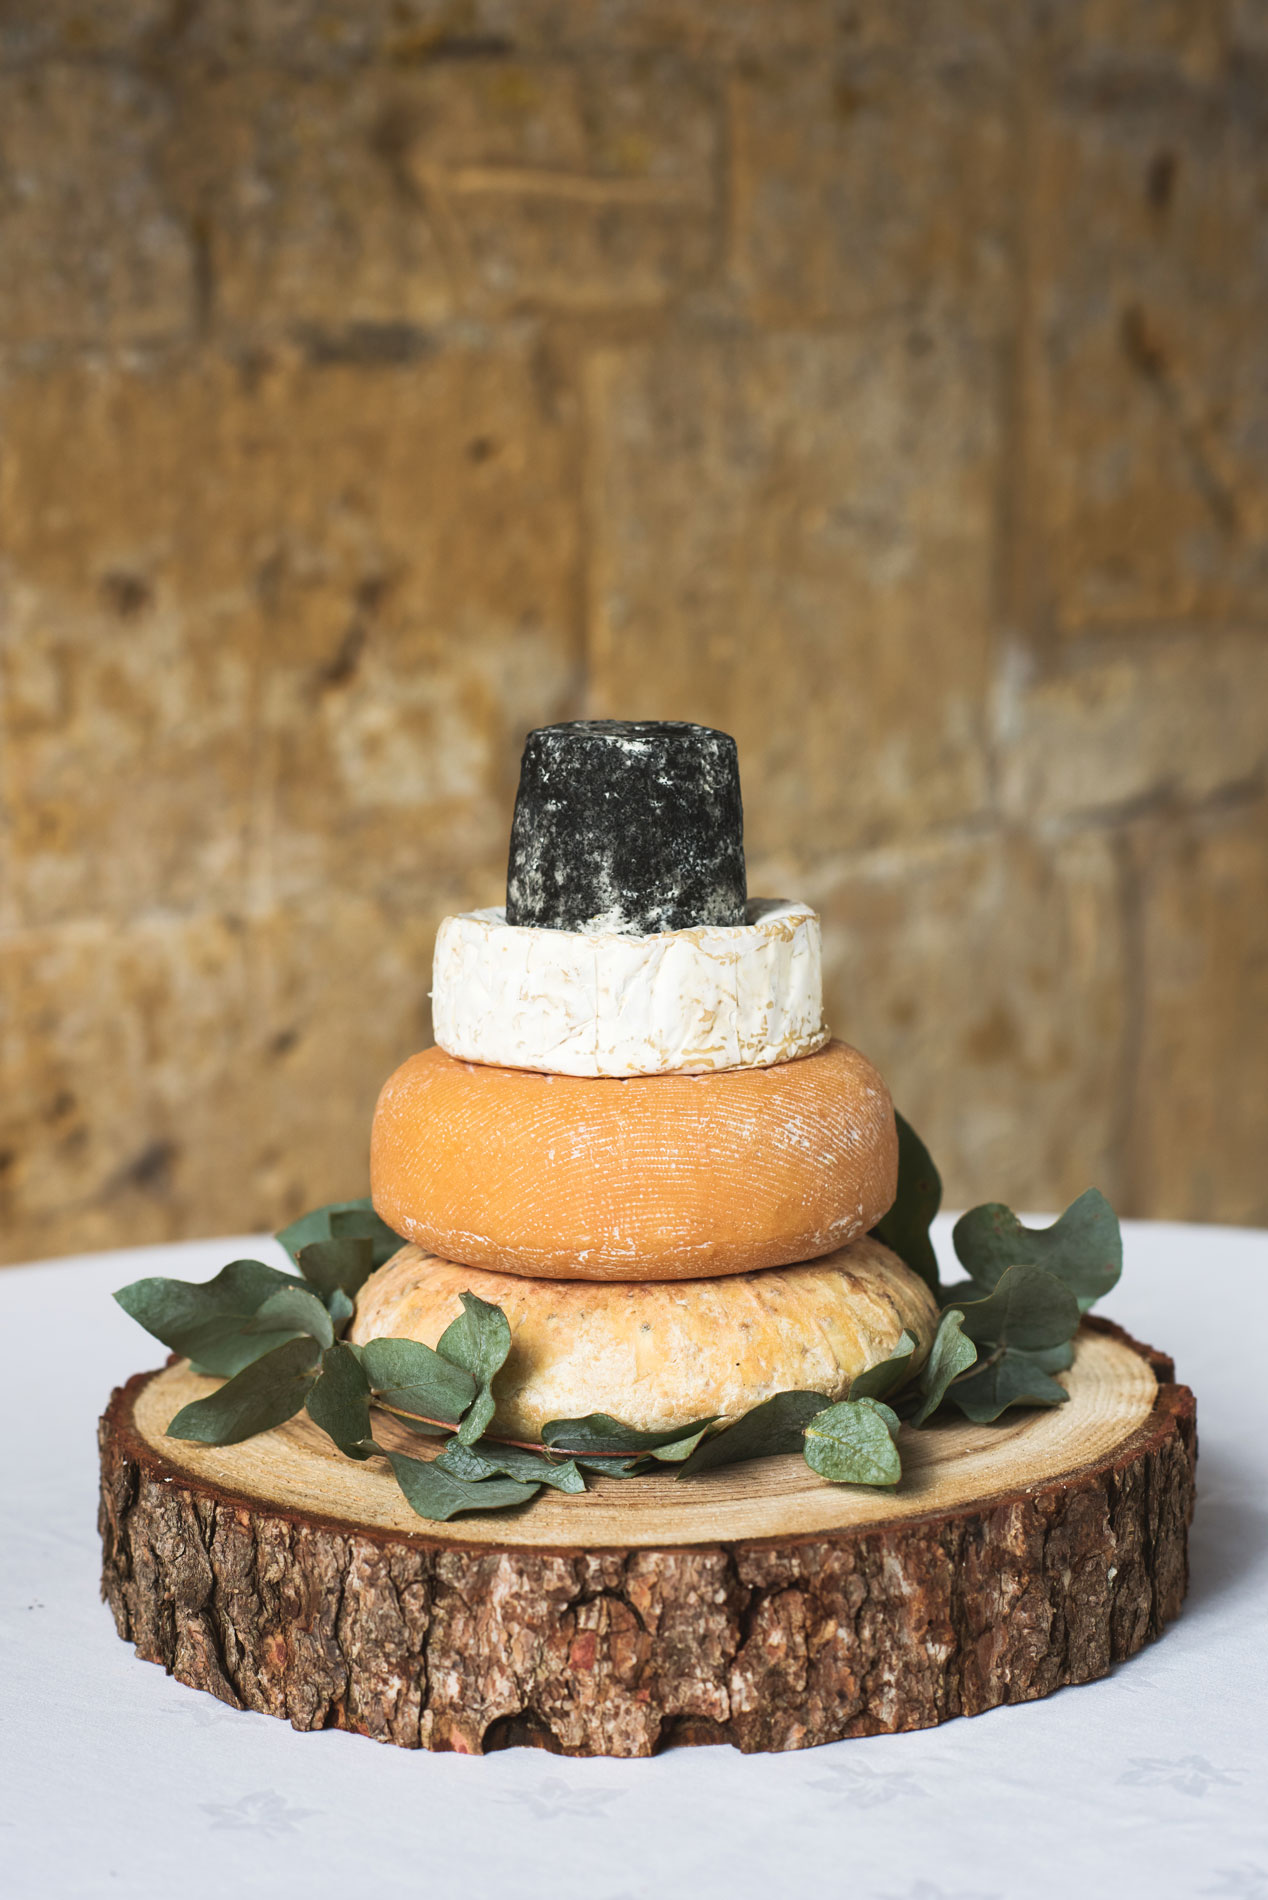 Cotswold-Cheese-Nov-2018-43.jpg